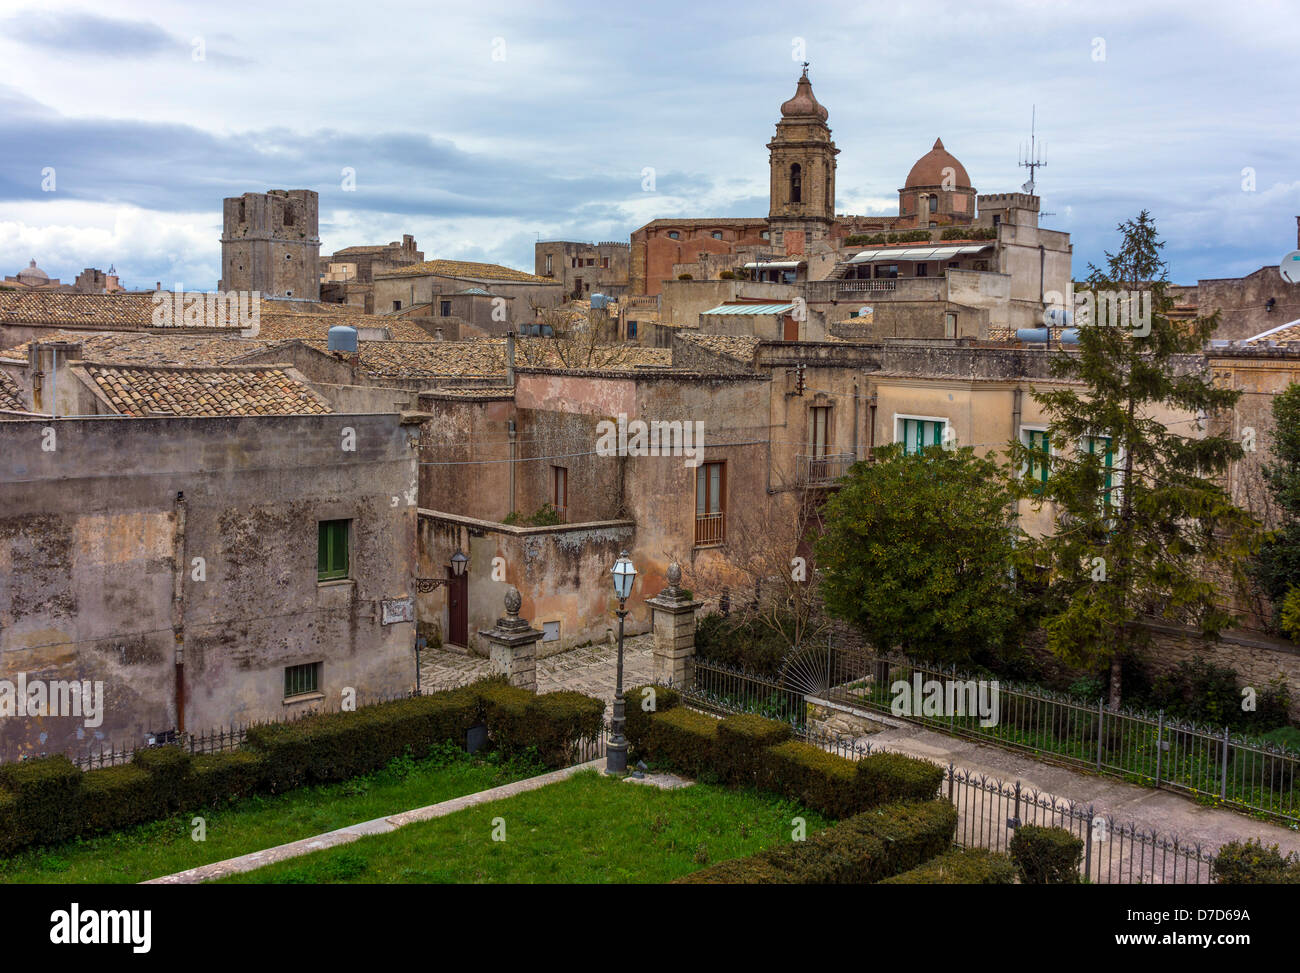 Churches and old buildings, Erice, ancient town, Sicily, Italy - Stock Image